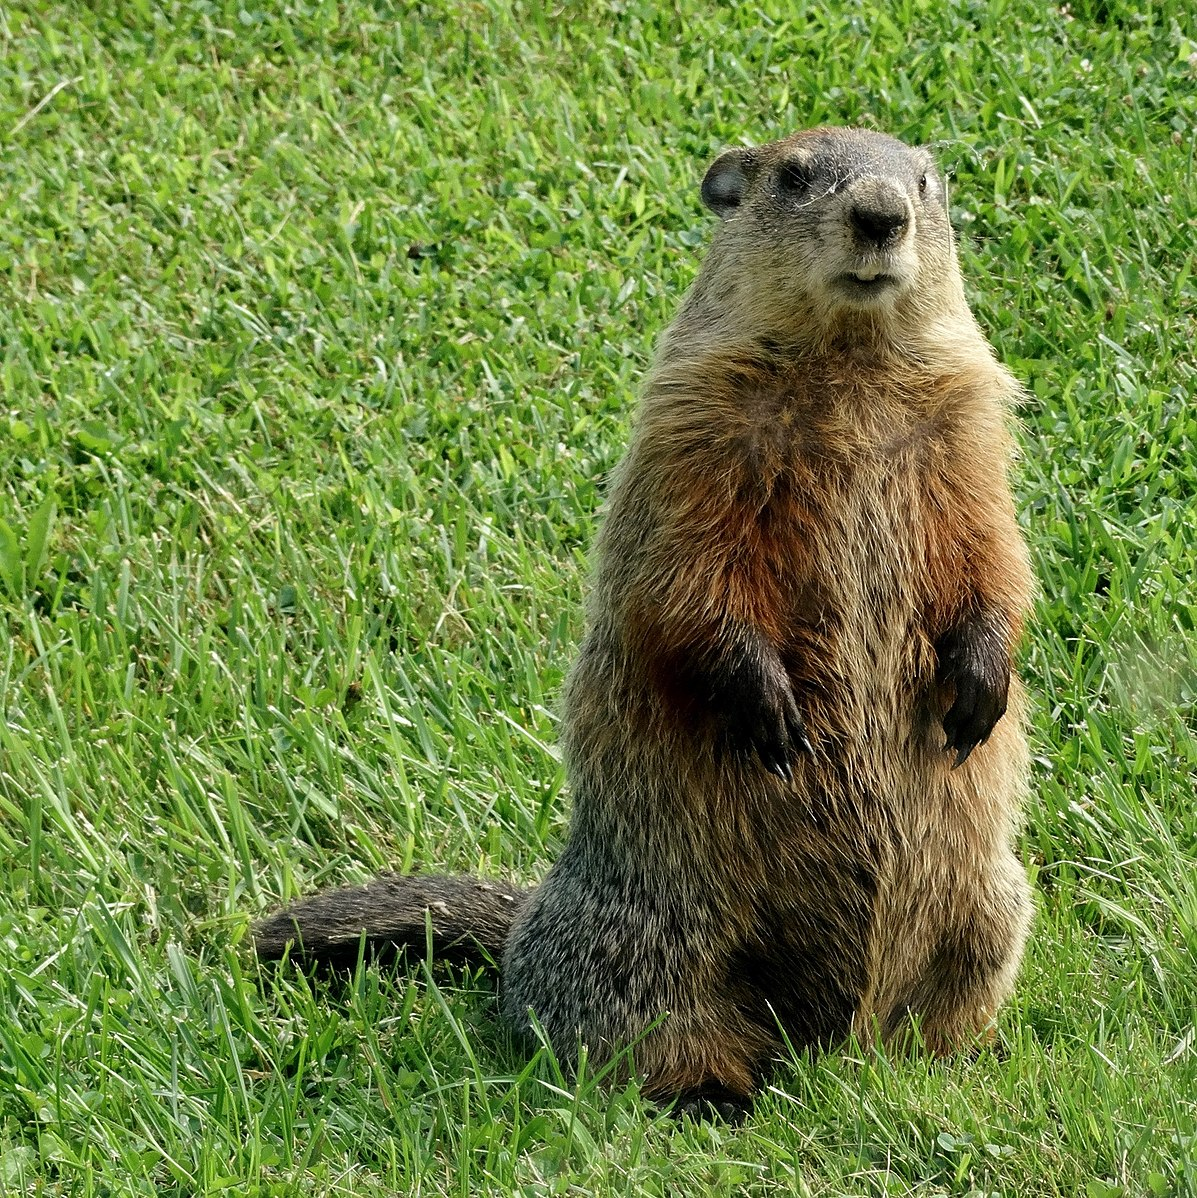 Difference Between Groundhog and Beaver